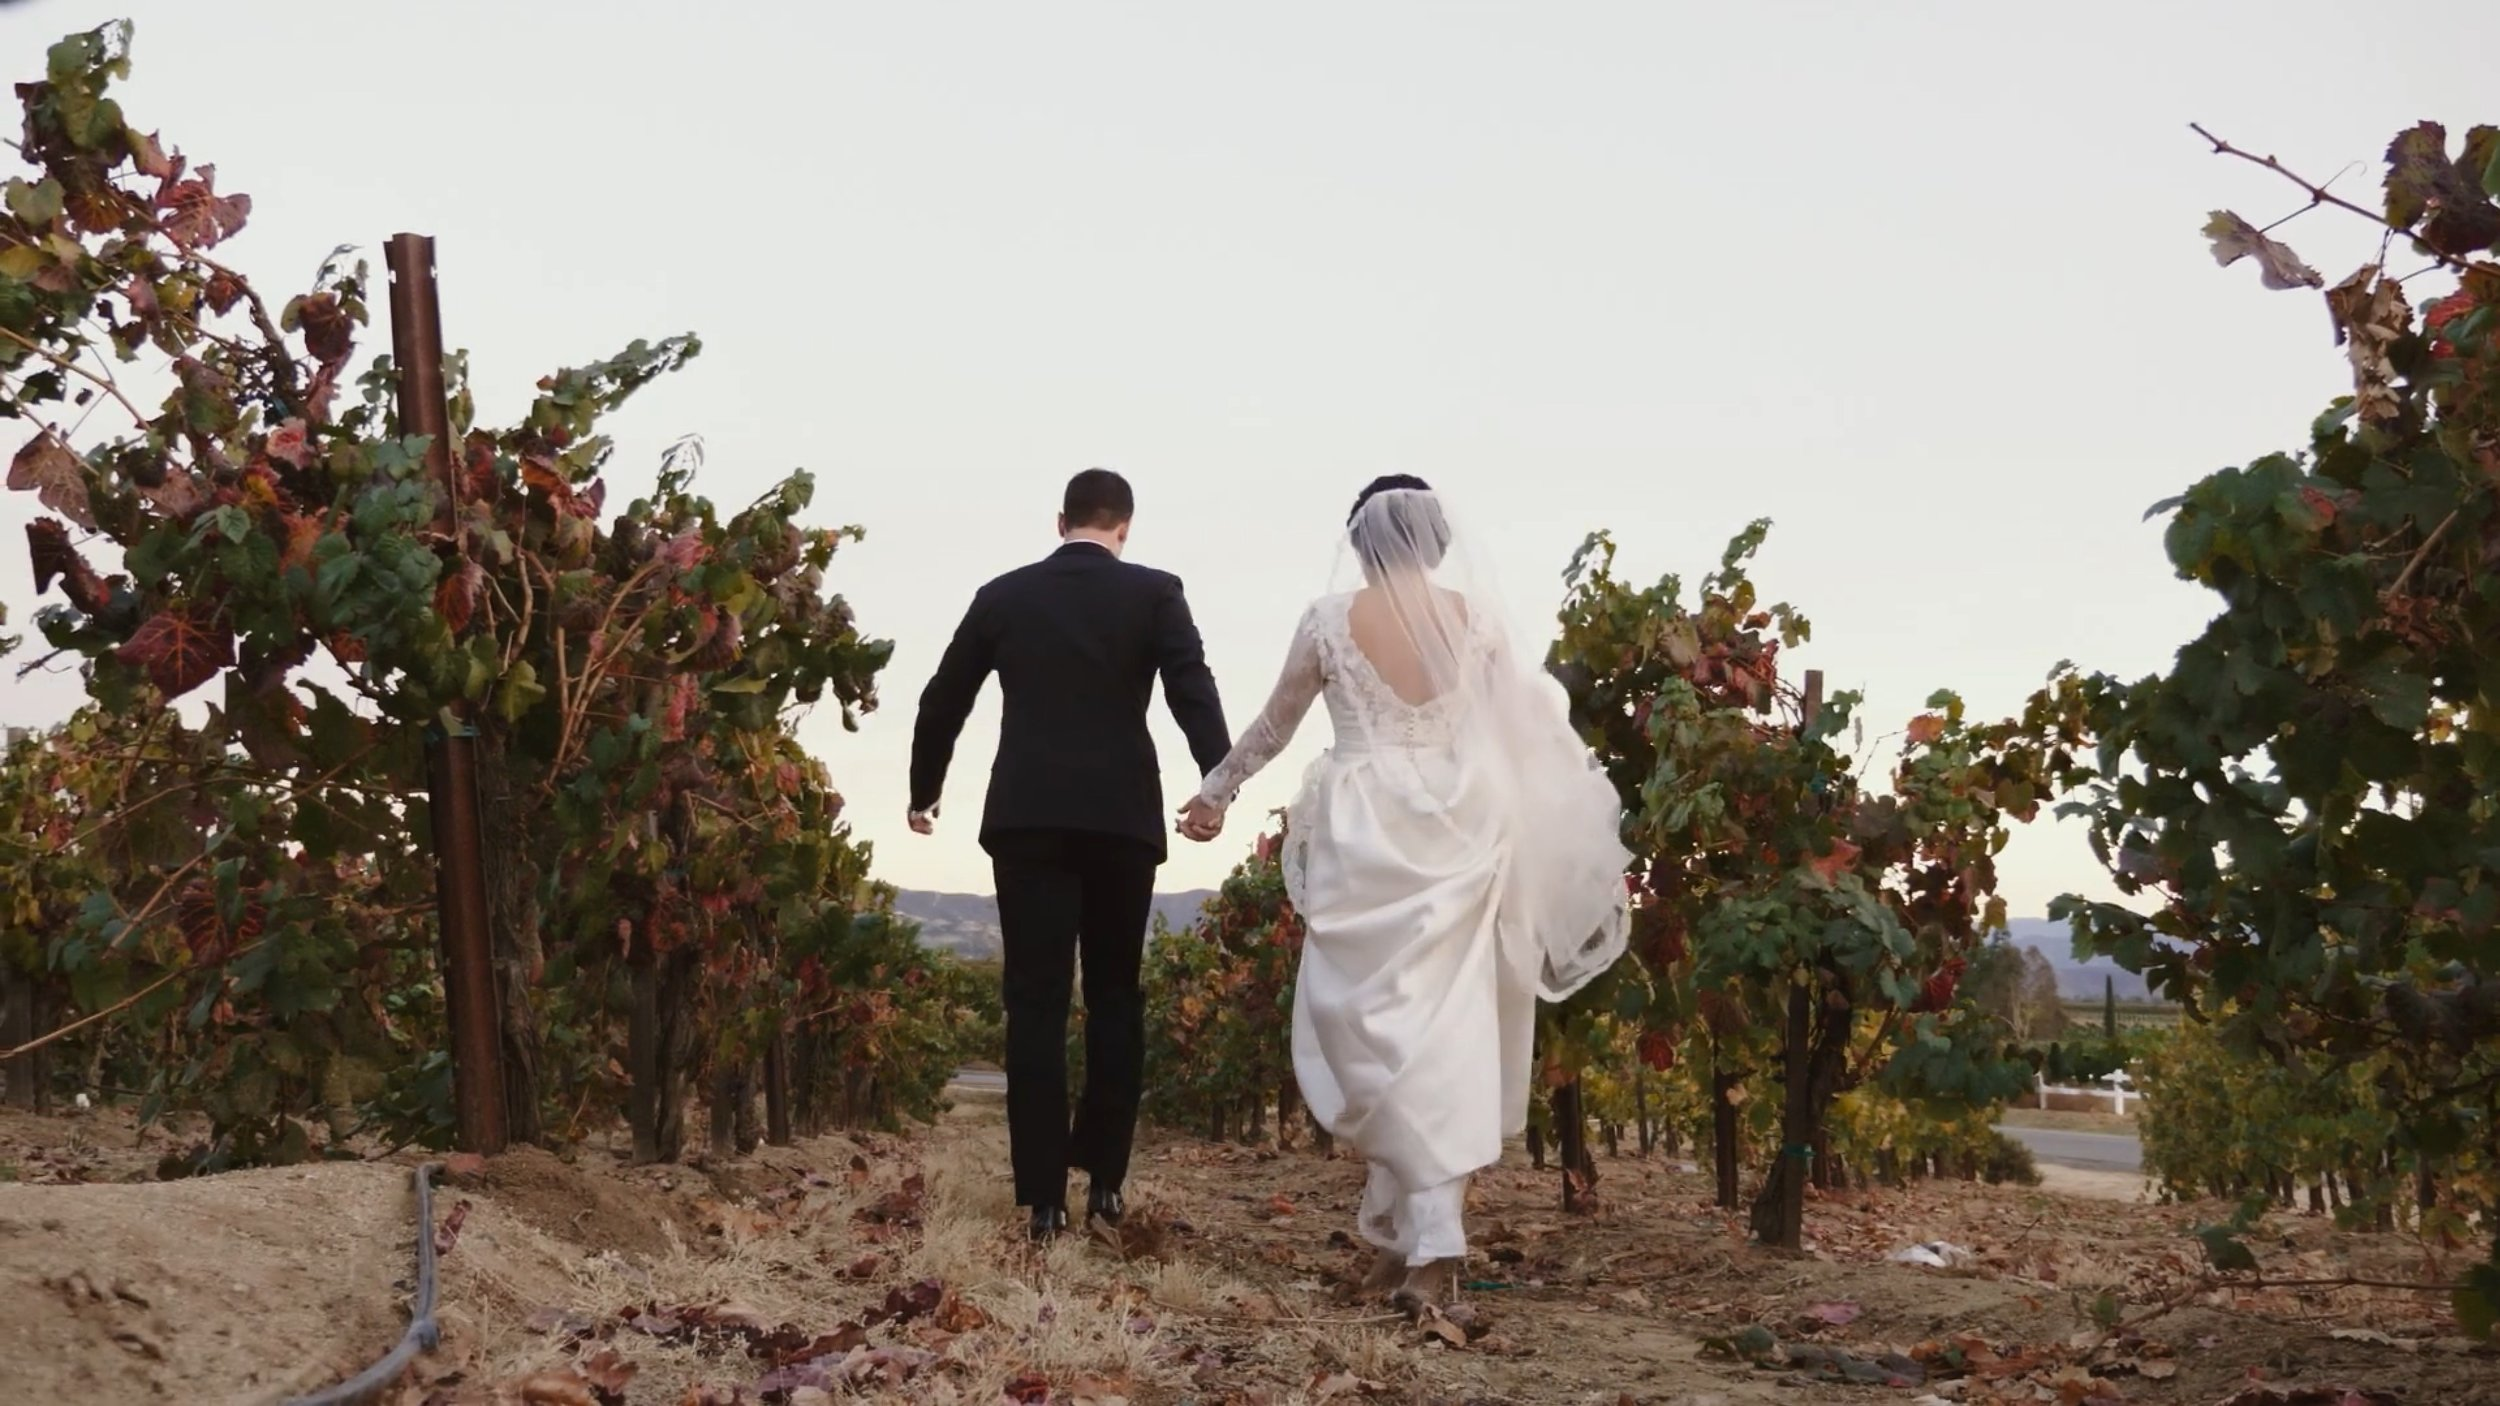 A bride and groom walking through the grape fields of a winery.